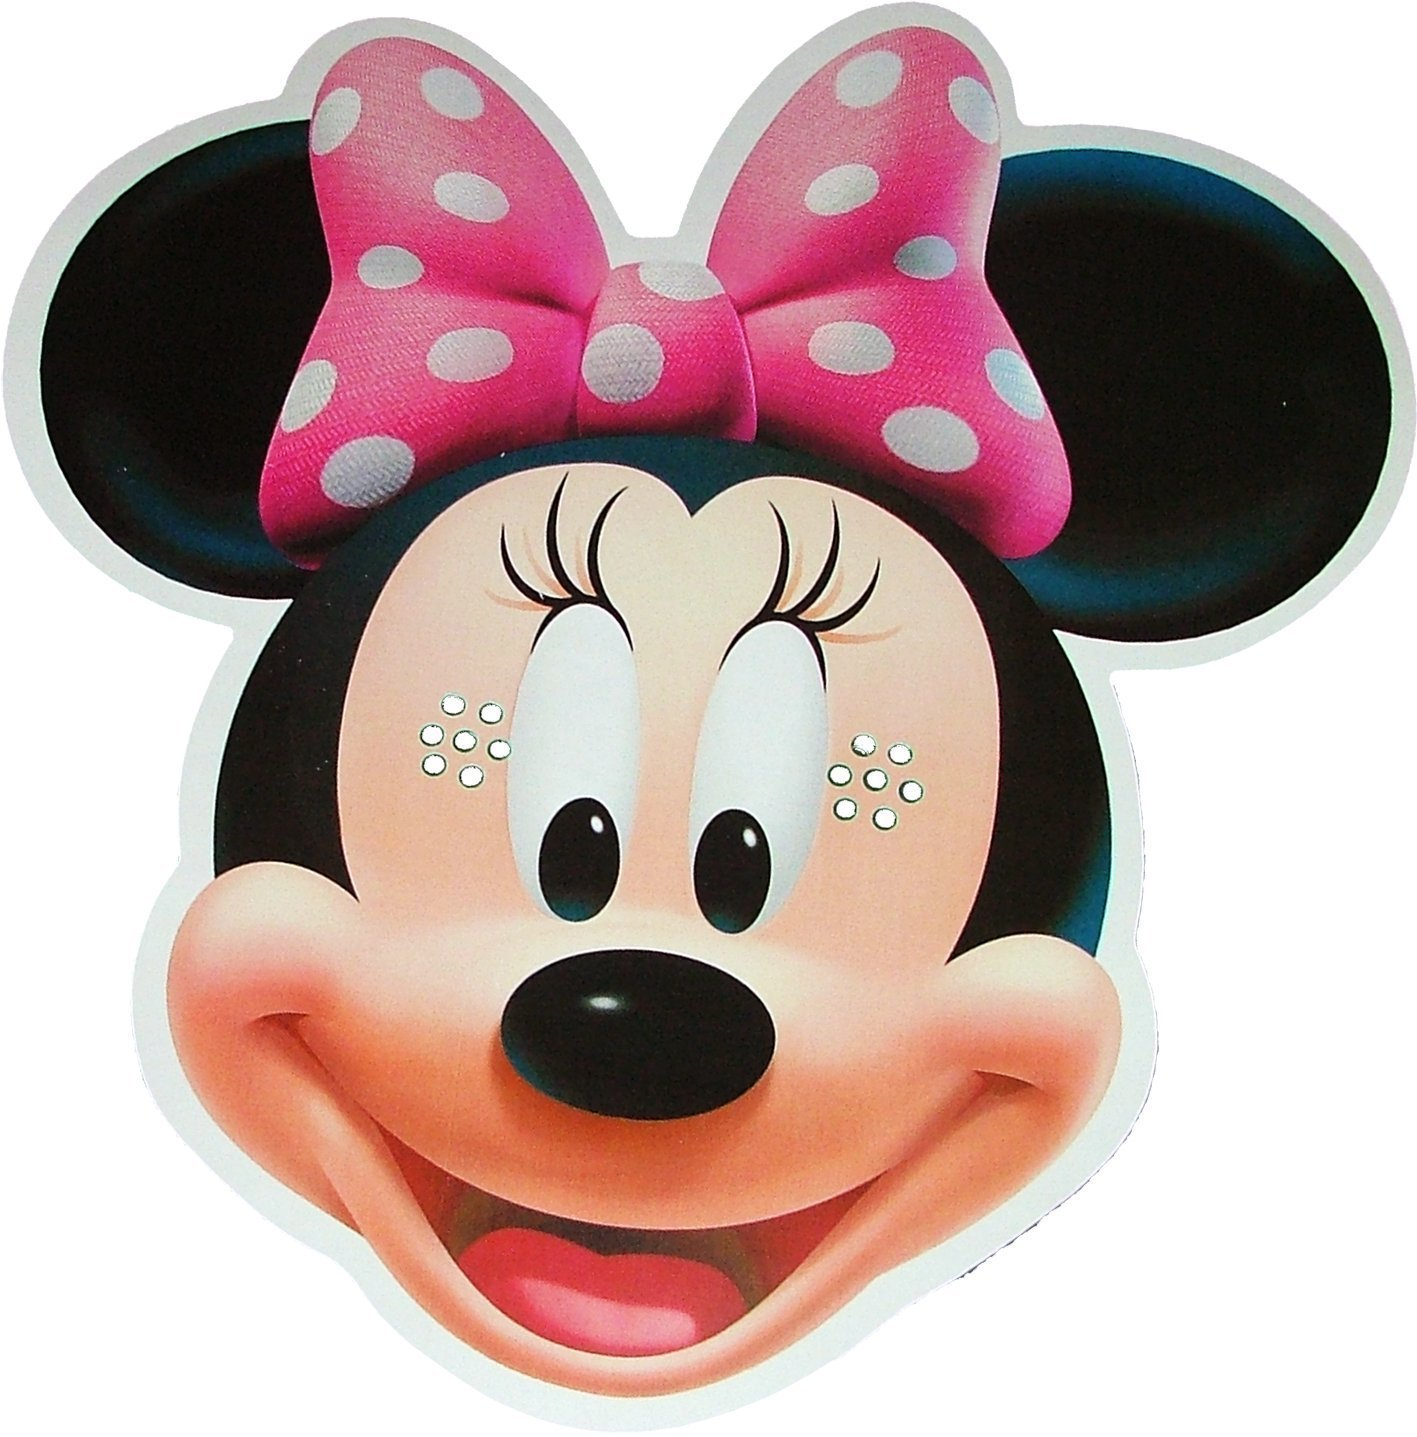 clipart free Free mouse download clip. Minnie clipart face outline pink.